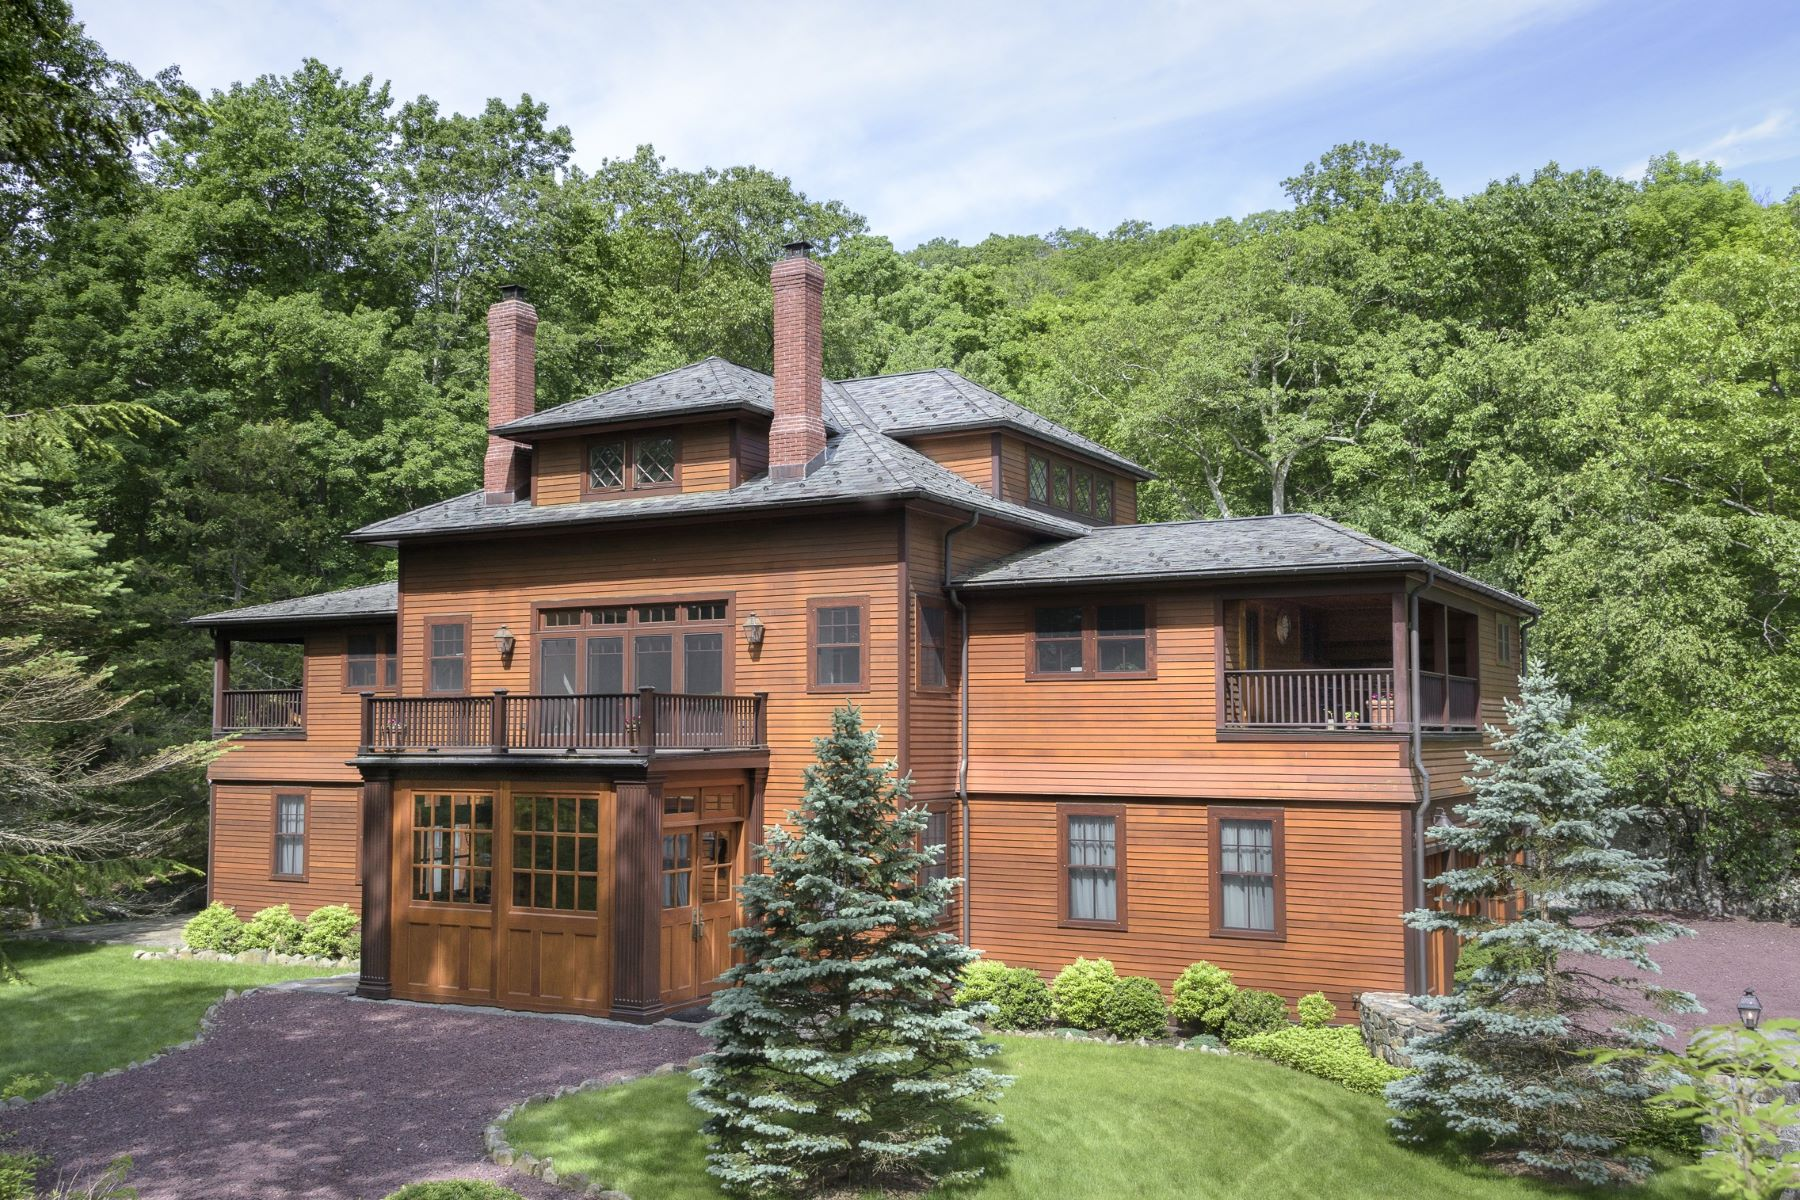 Single Family Home for Sale at Patterson Brook Carriage House 18 Patterson Brook Rd Tuxedo Park, New York 10987 United States